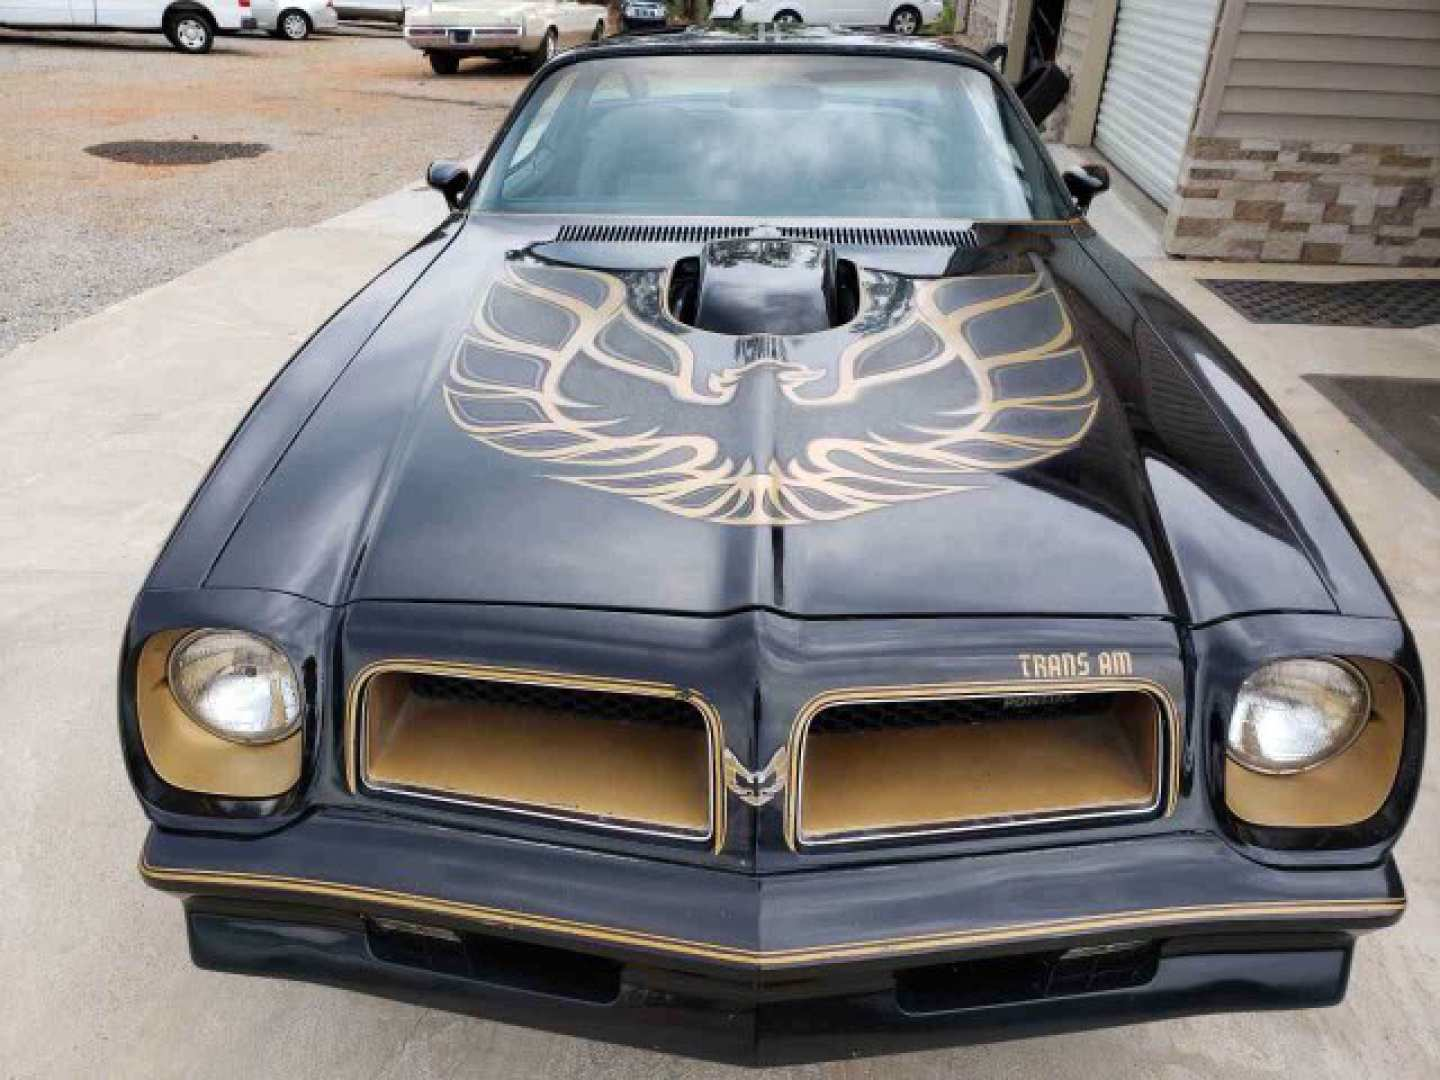 1976 PONTIAC TRANS AM HURST PACKAGE For Sale at Vicari Auctions